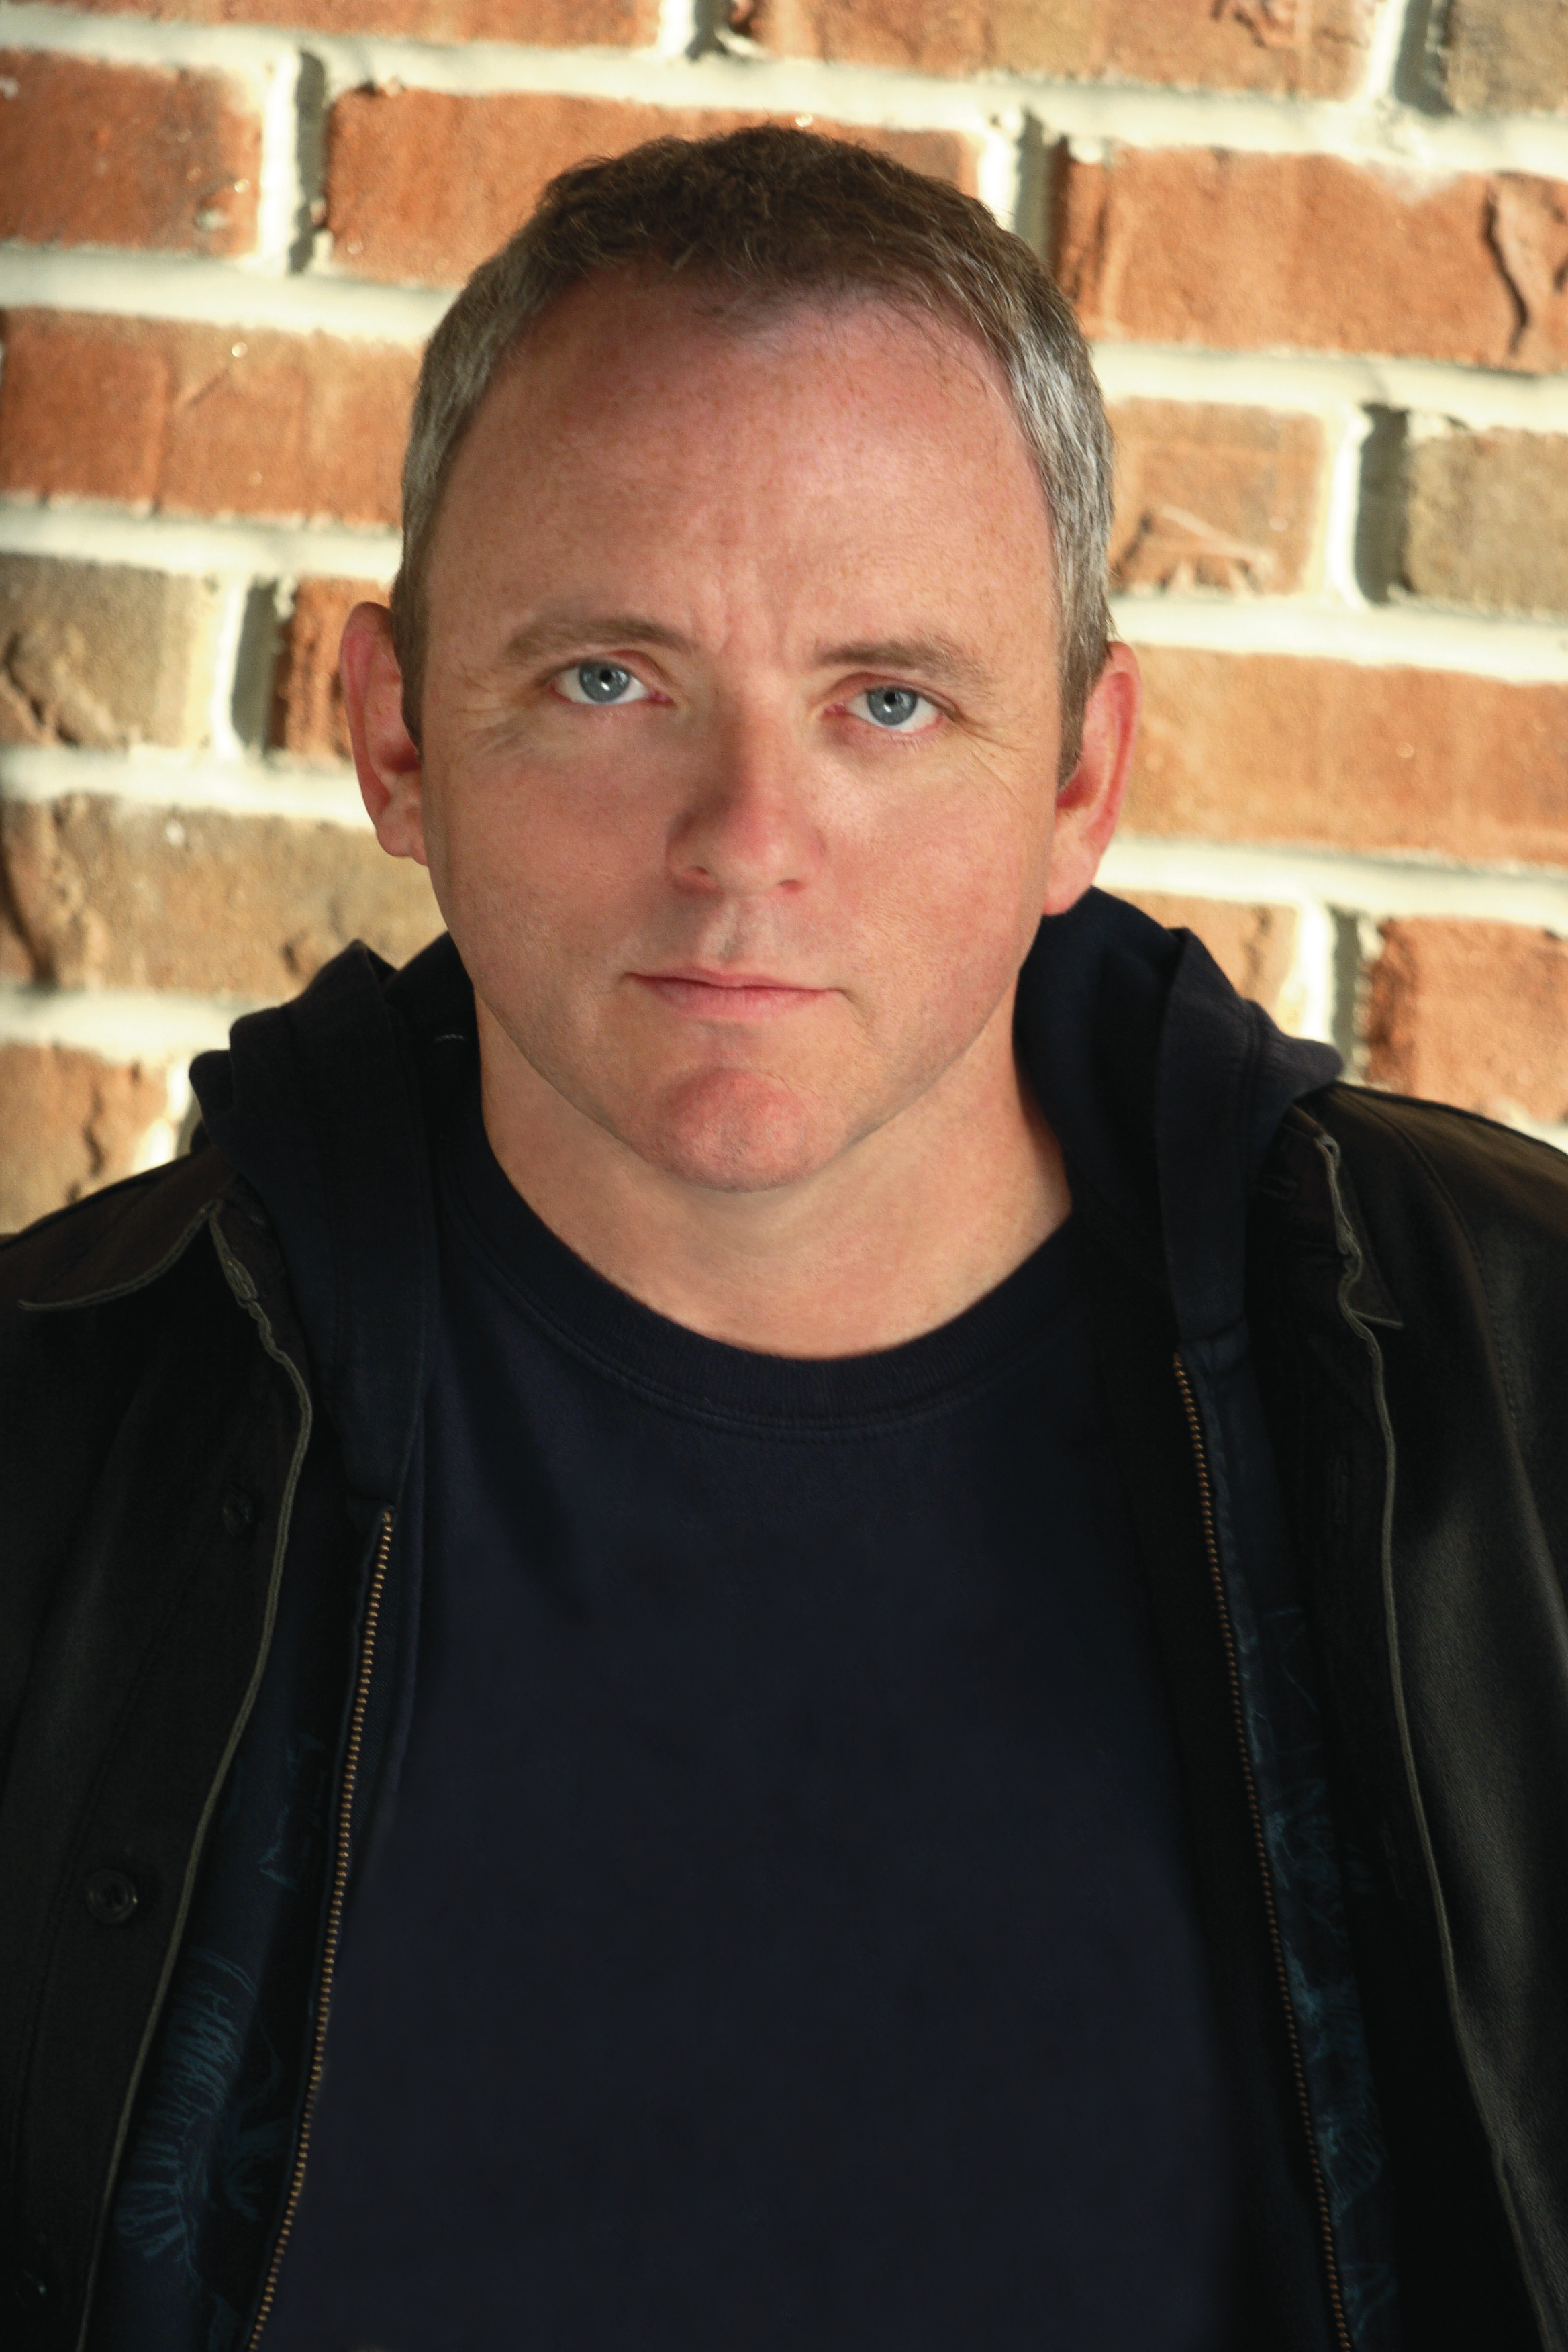 Dorchester, Massachusetts, USA, 1965-08-4, Dennis Lehane